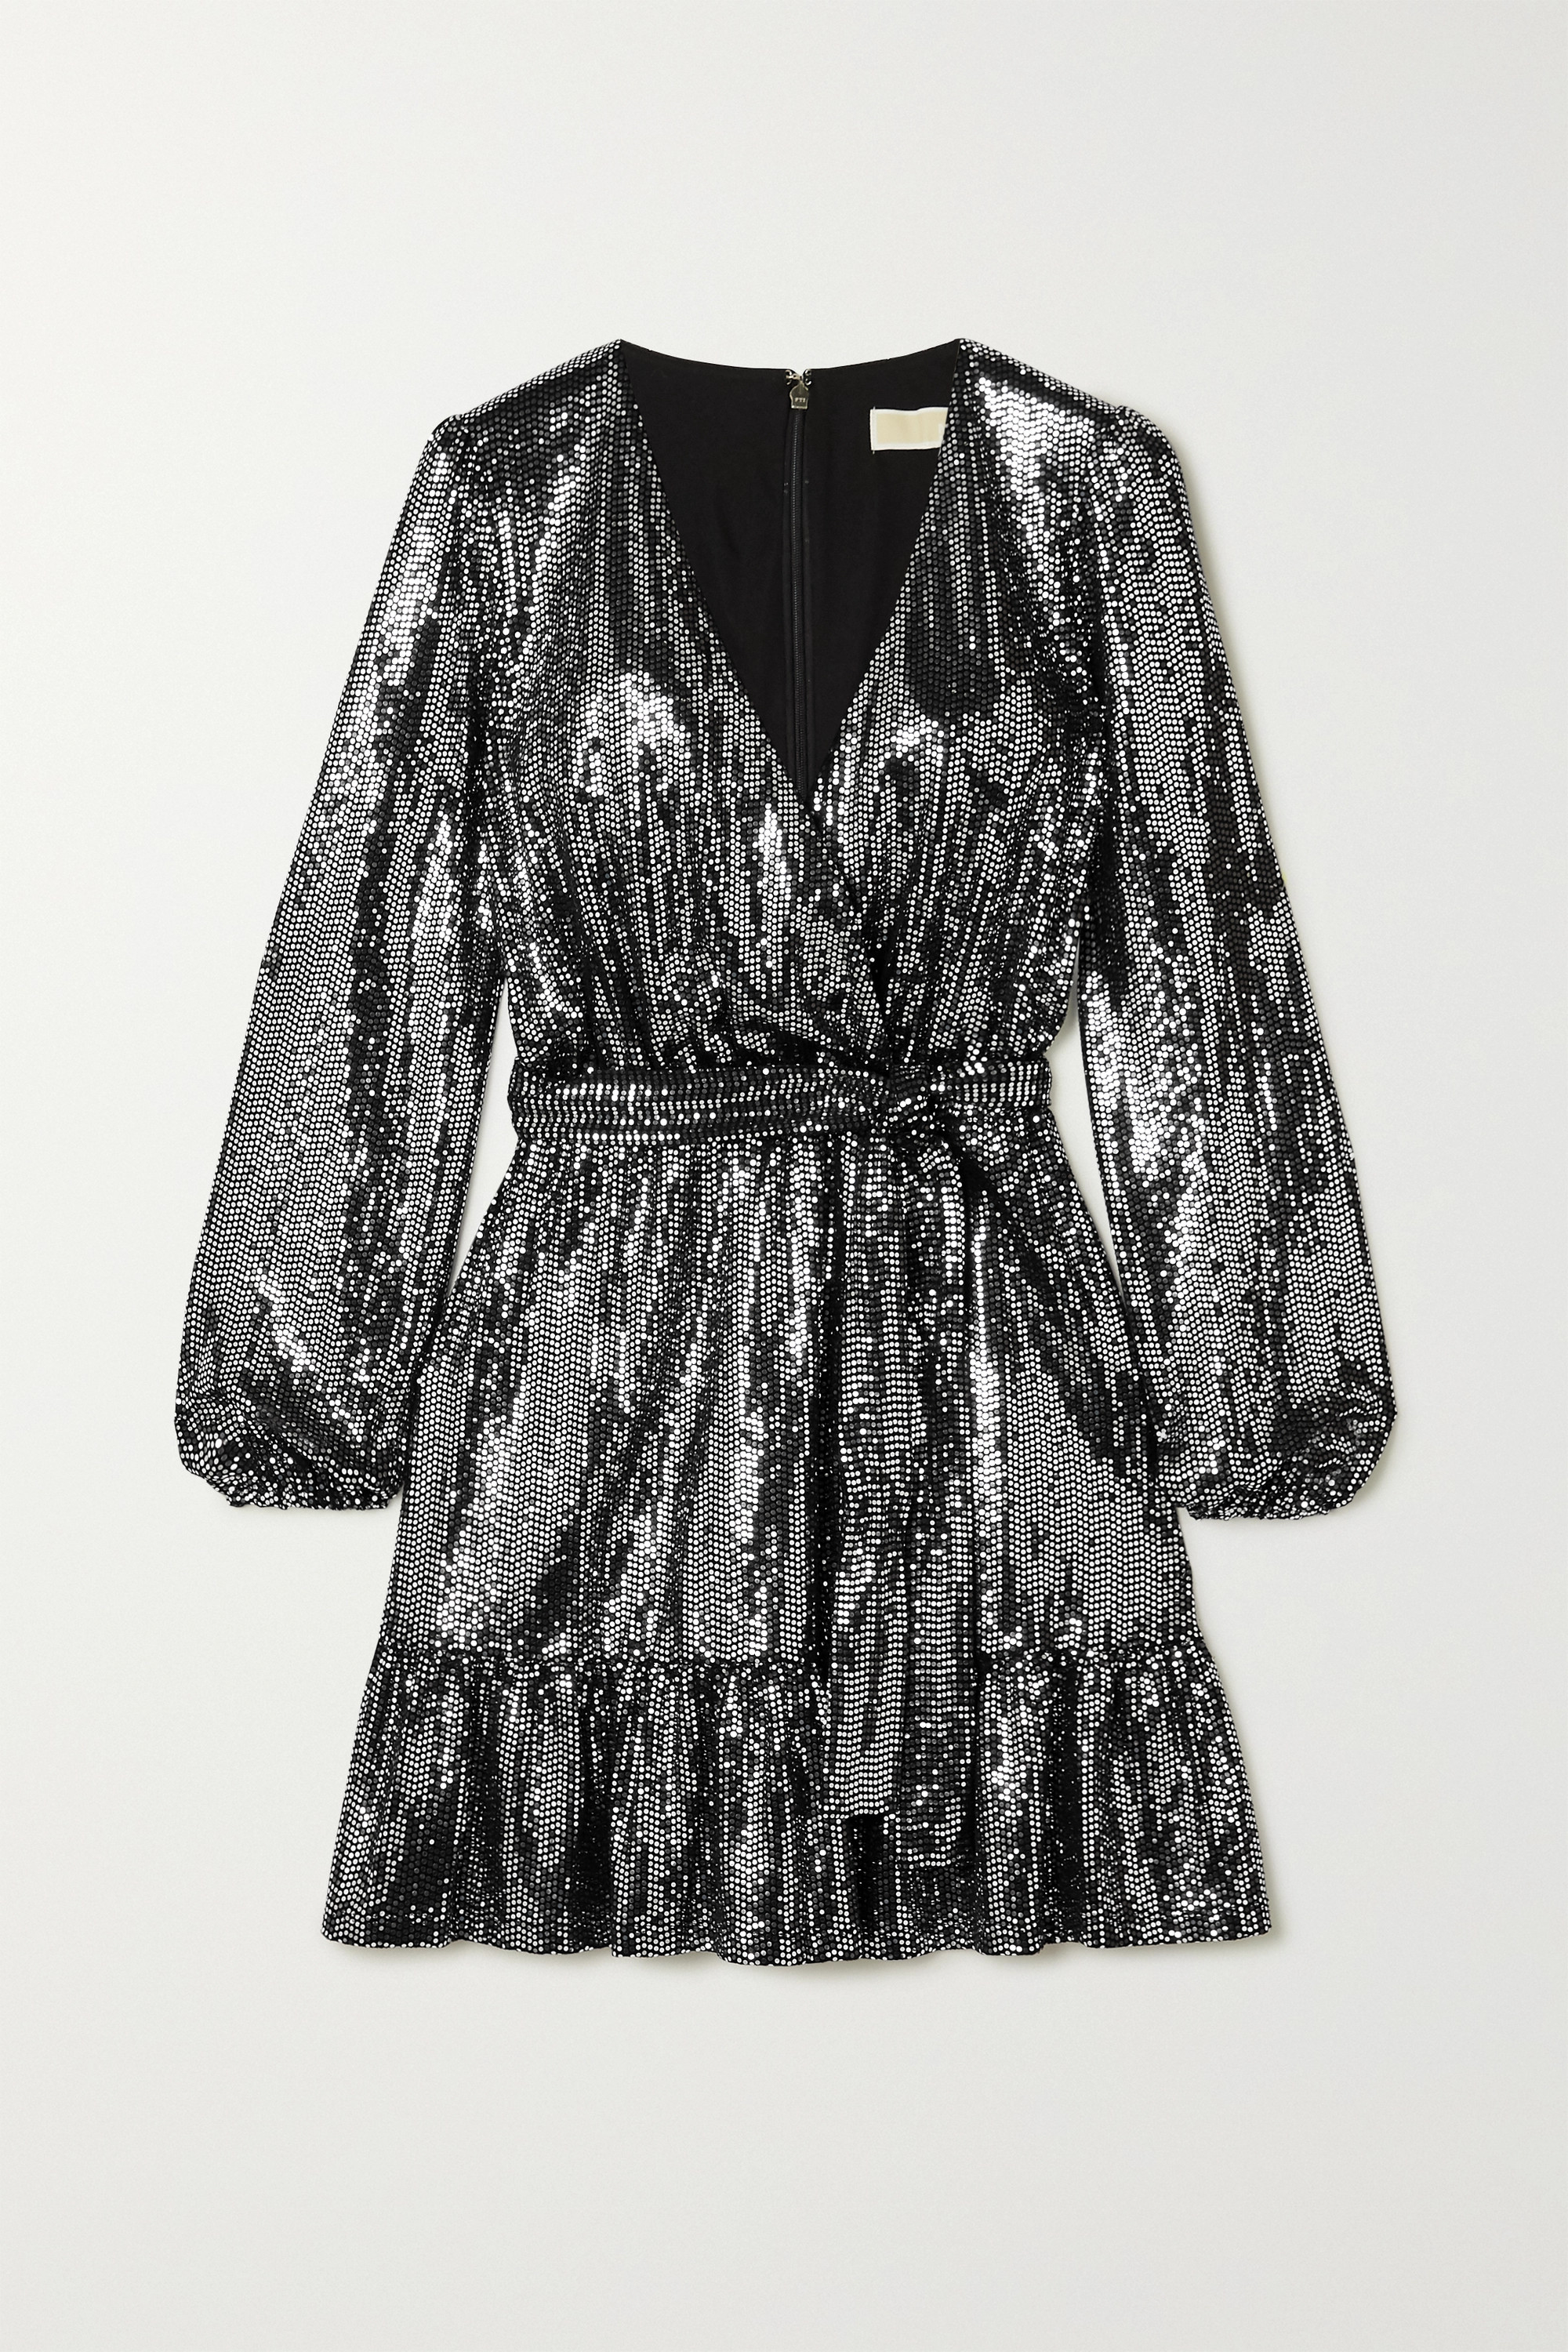 MICHAEL Michael Kors Wrap-effect sequined stretch-jersey dress